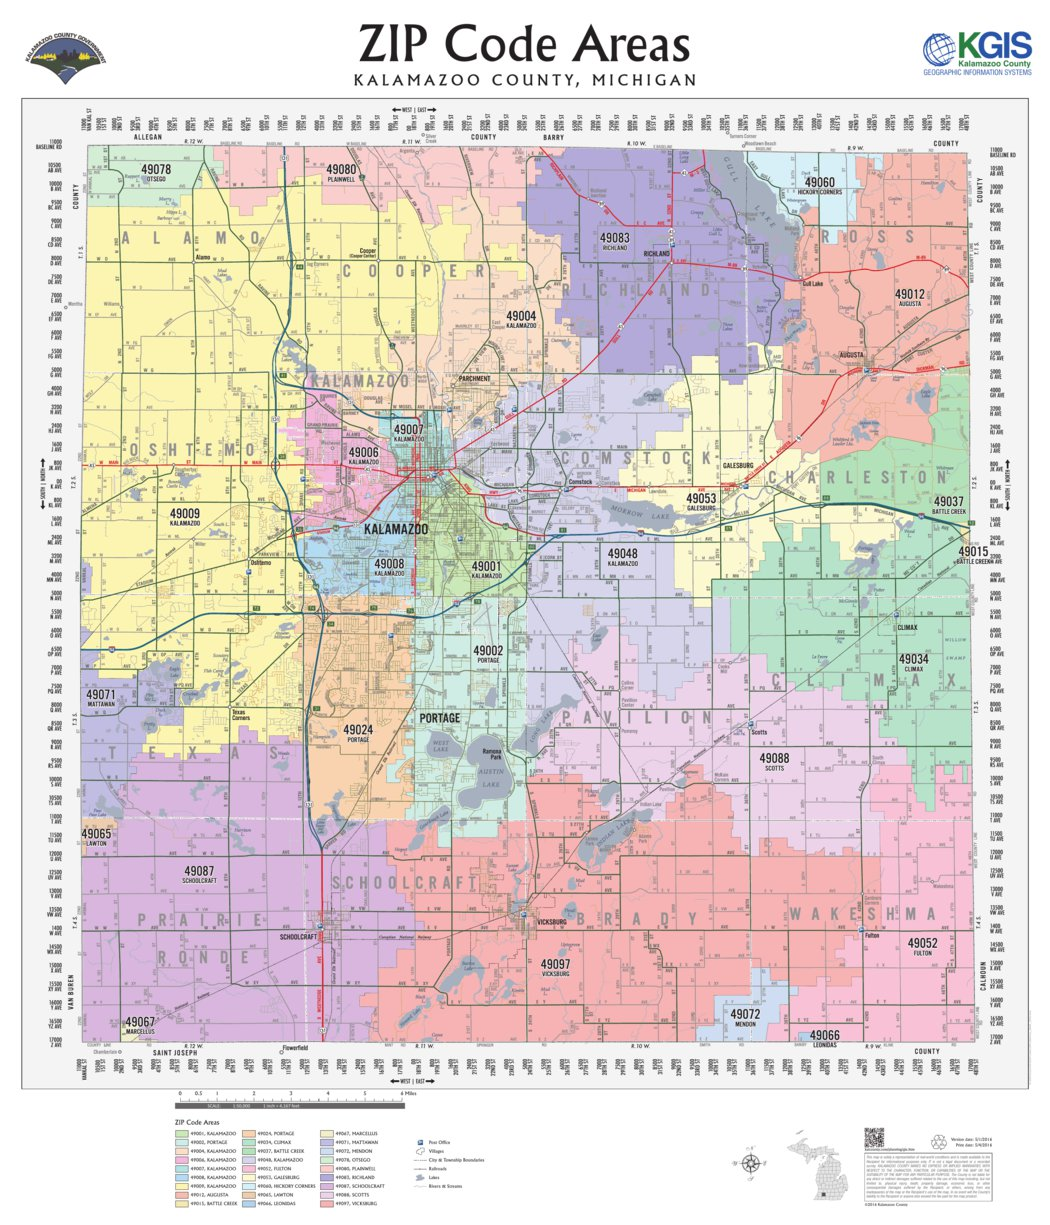 Kalamazoo Zip Code Map Kalamazoo County ZIP Code Areas 2016   Kalamazoo County   Avenza Maps